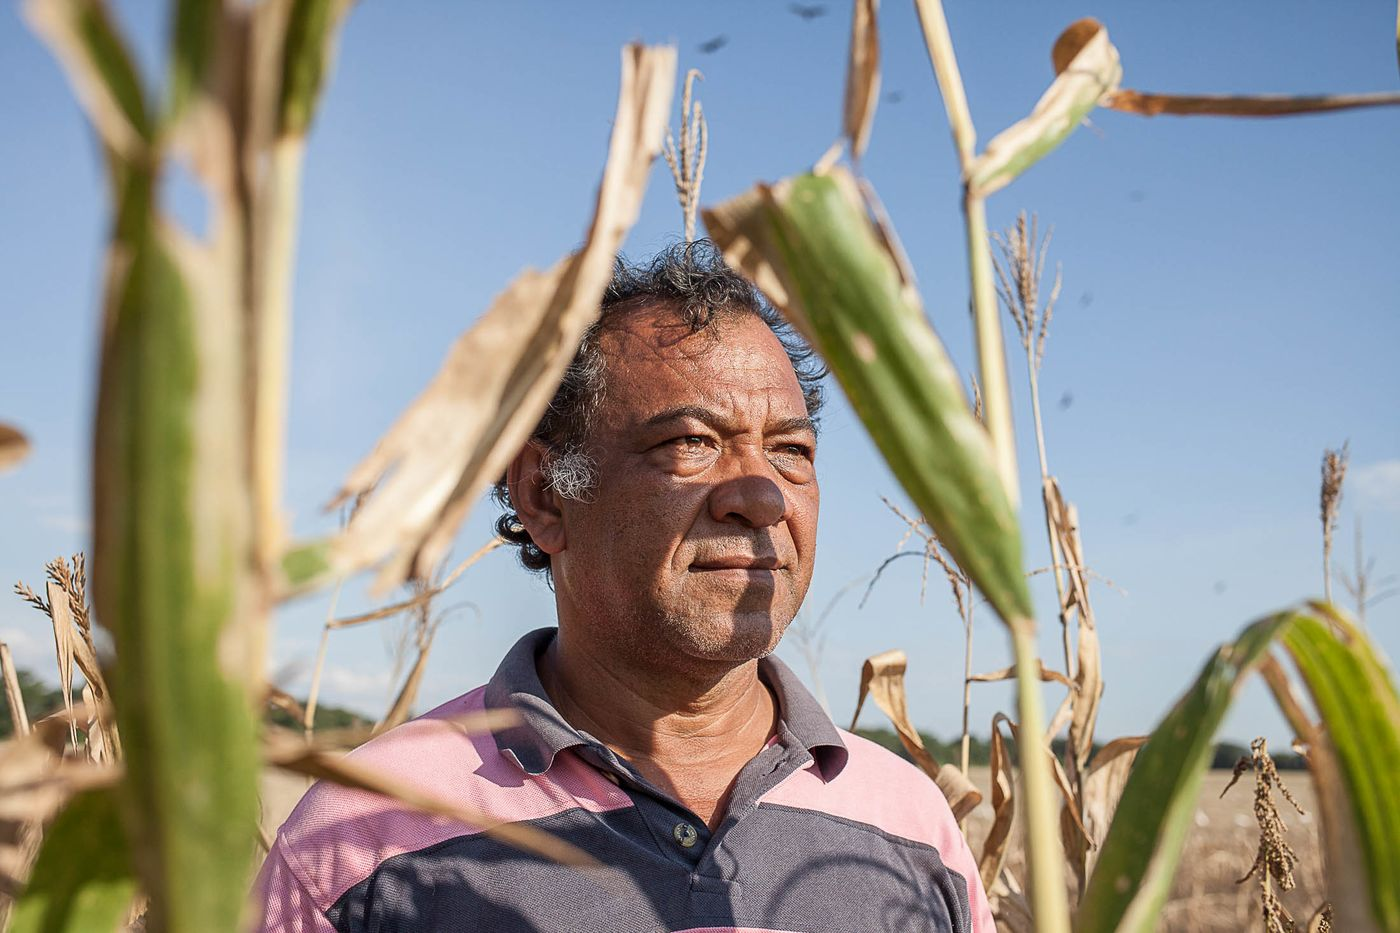 """There's no seeds or fertilizer. On top of that, there's regular shortages of food and power cuts,"" said  farmer Johnny Villaroel, 49. ""I work at a loss, but, sadly, that's all we know how to do: plant."""